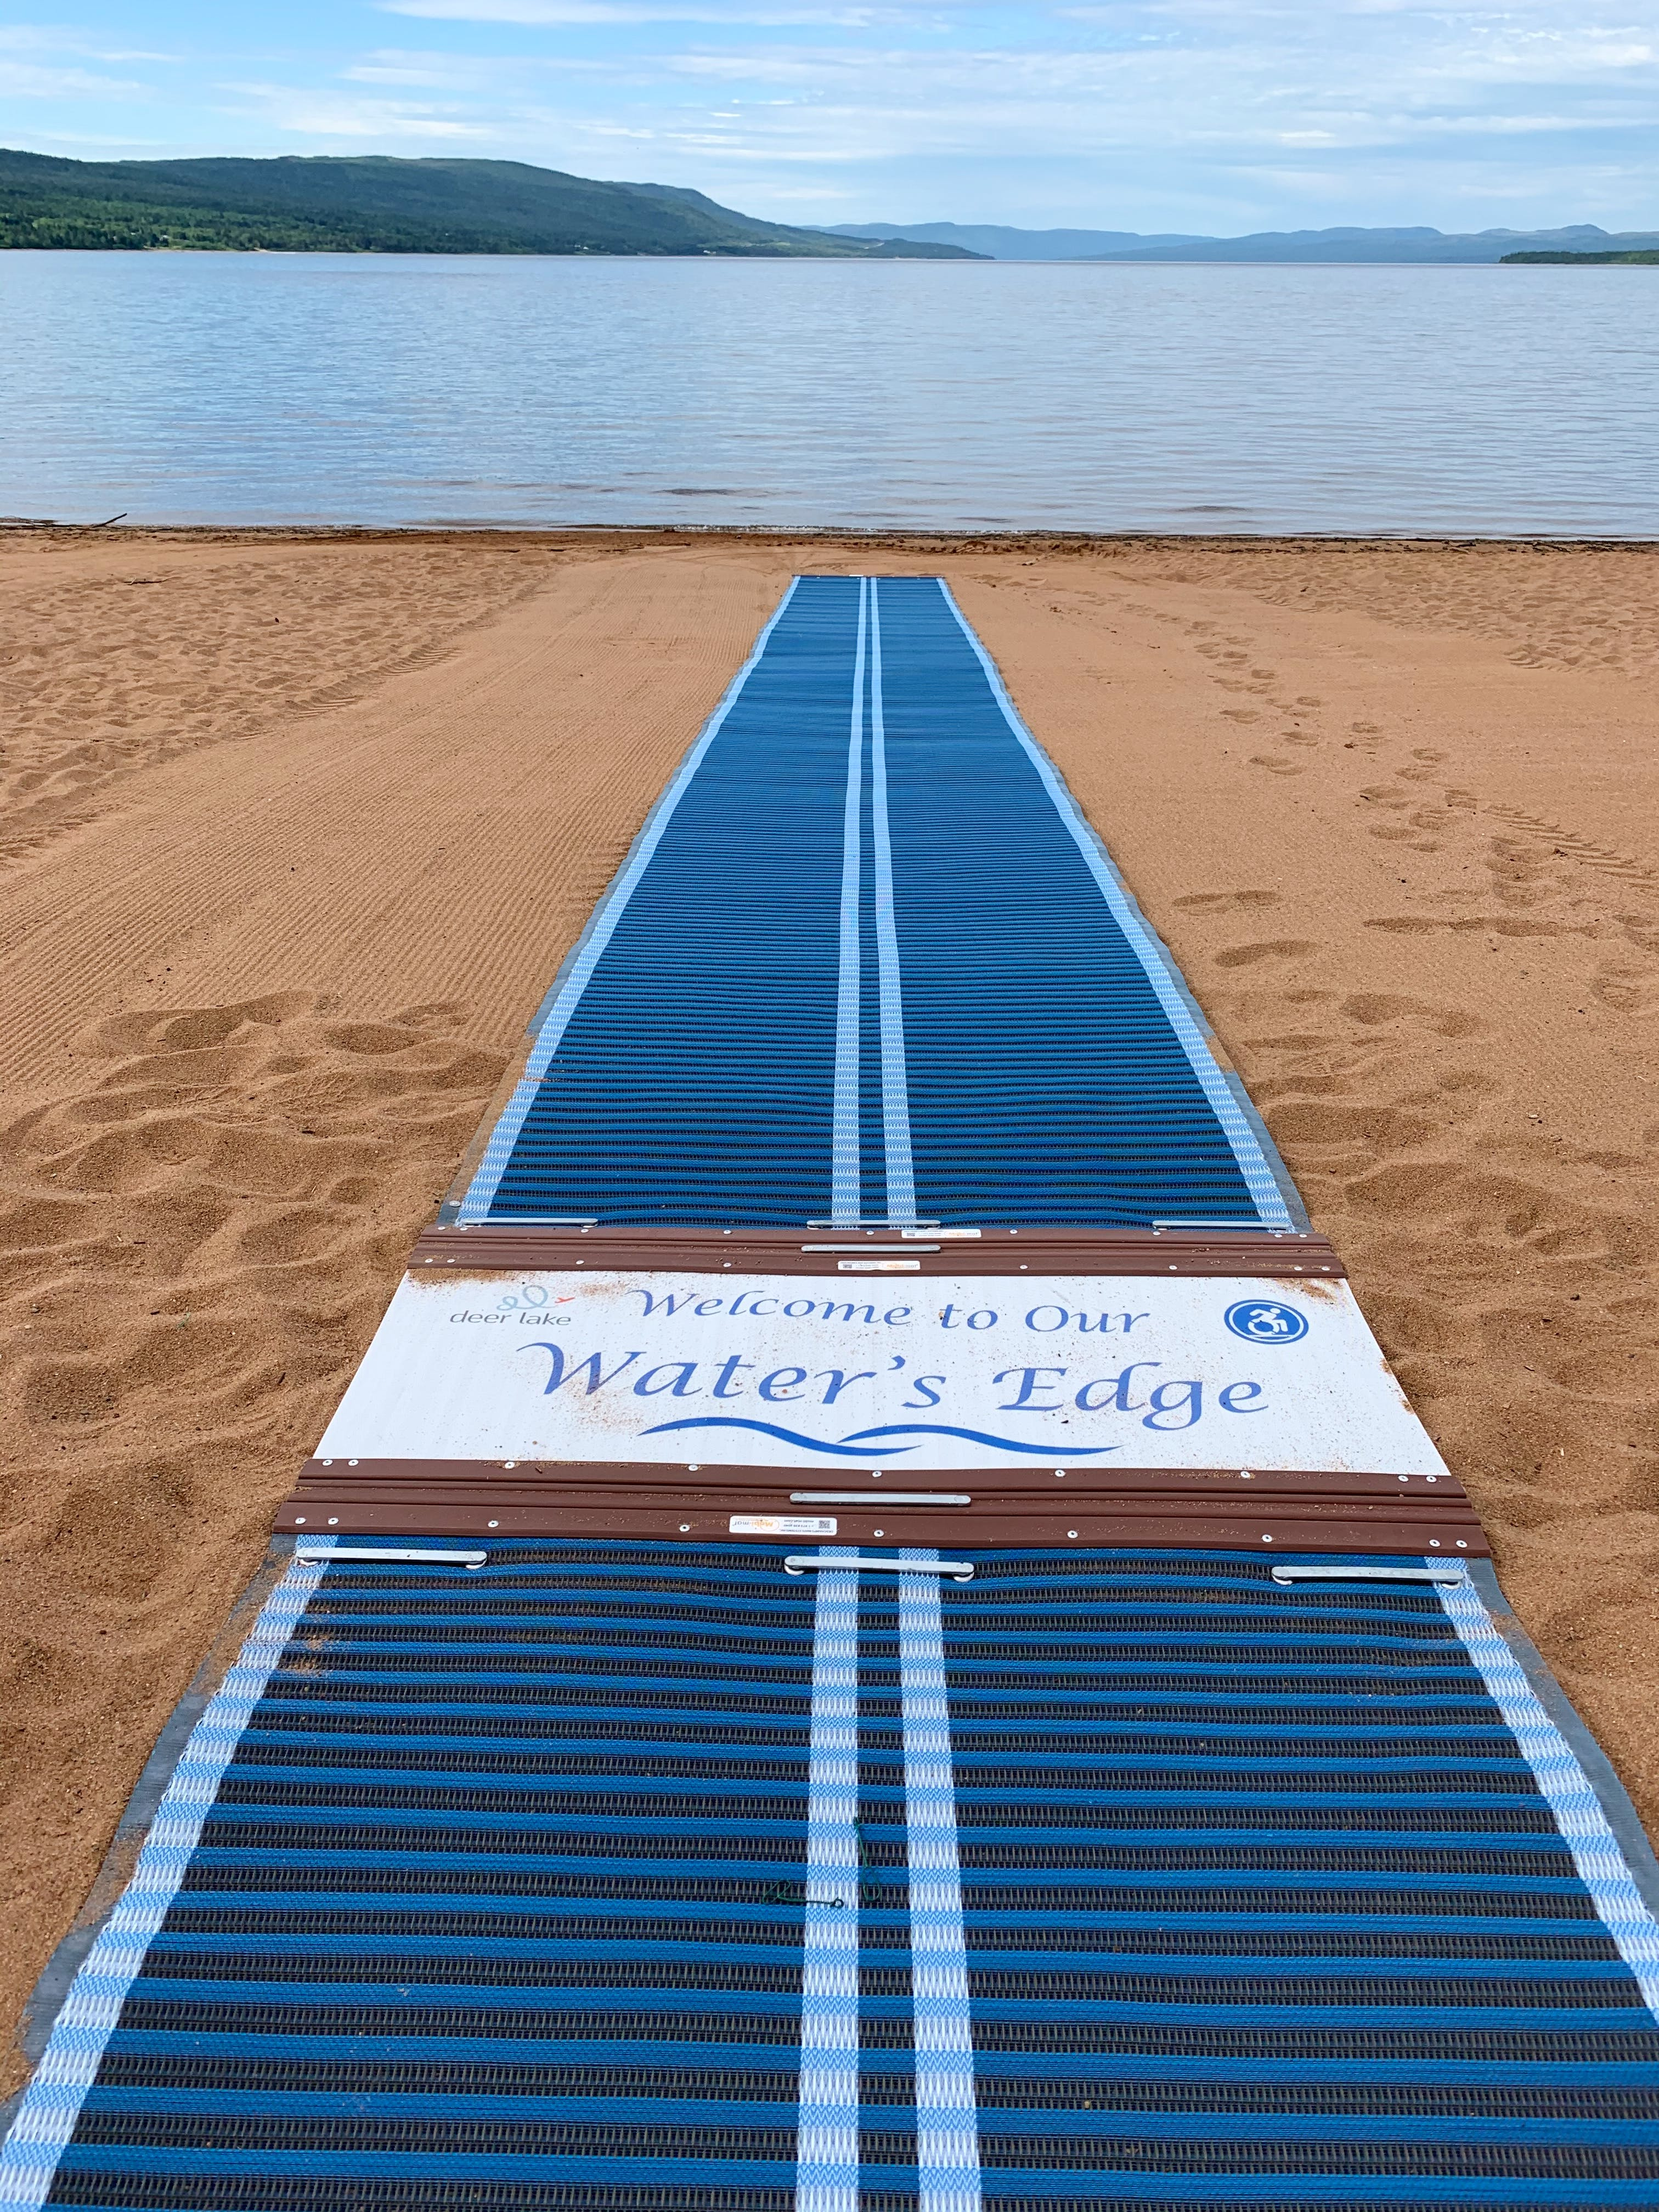 The Town of Deer Lake has installed accessible mats at Deer Lake Beach that will enable people with mobility issues to access and enjoy the beach.